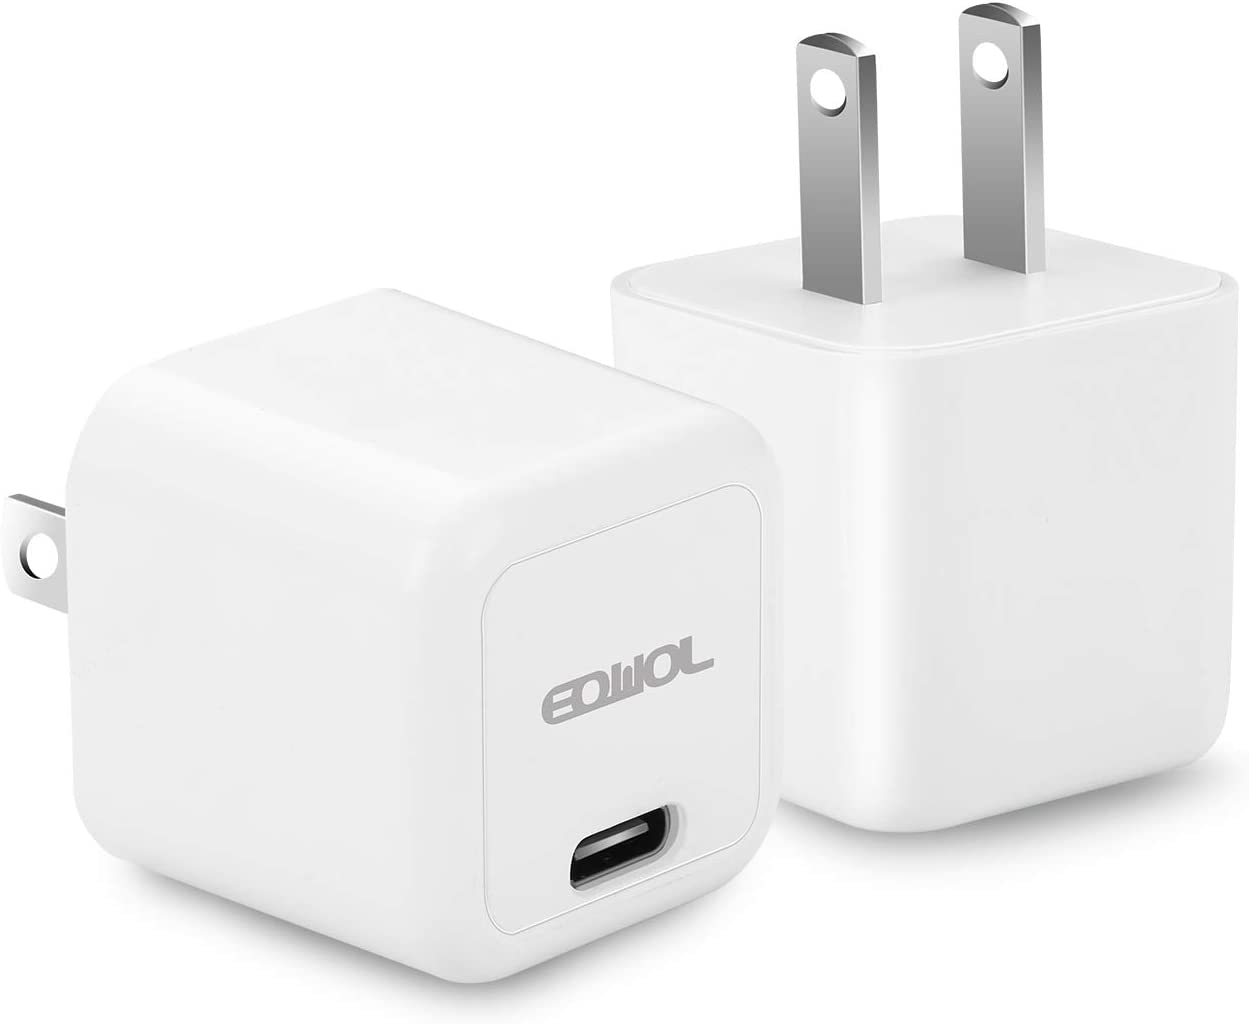 USB C Charger, EQWOL Byte 2-Pack 20W Mini USB-C Wall Charger, Fast Charger Compatible with iPhone 12 Pro max / 12 Pro / 12/12 Mini / 11, Galaxy, Pixel 4/3, iPad Pro (2-White)